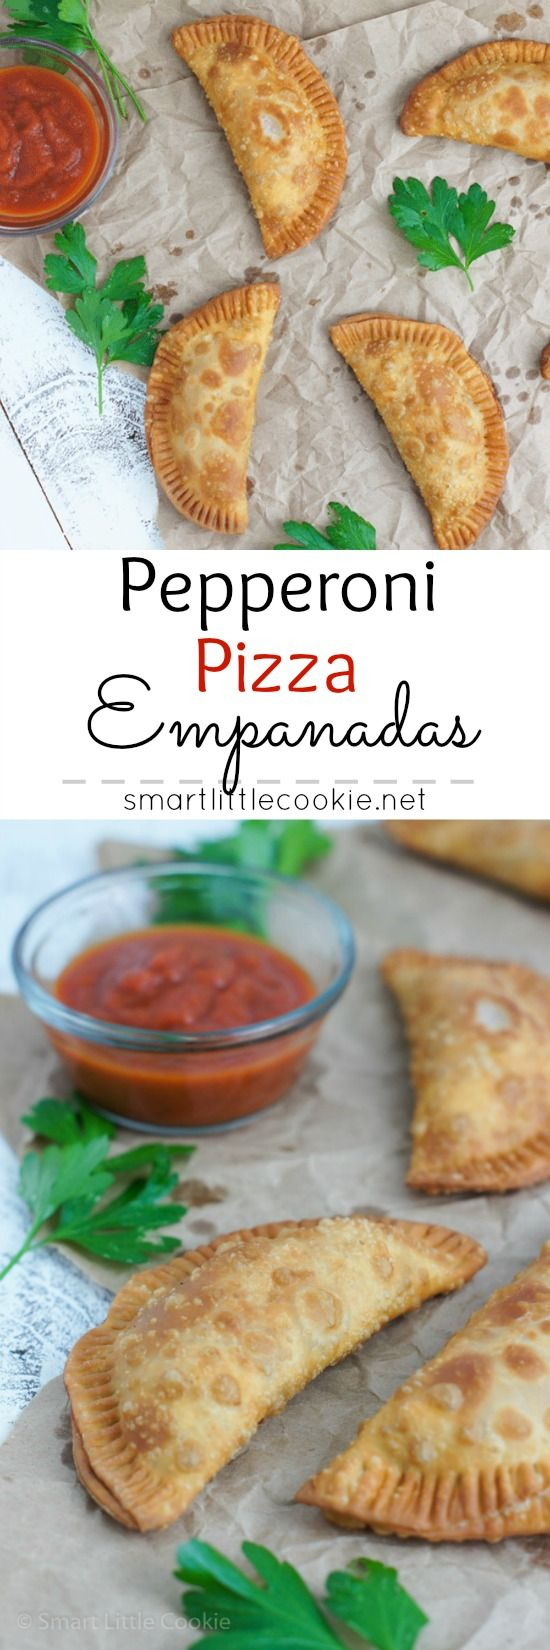 Pepperoni Pizza Empanadas ~ Crunchy on the outside, cheesy and gooey on the inside. The perfect snack or appetizer for any occasion. #GameTimeClean #ad